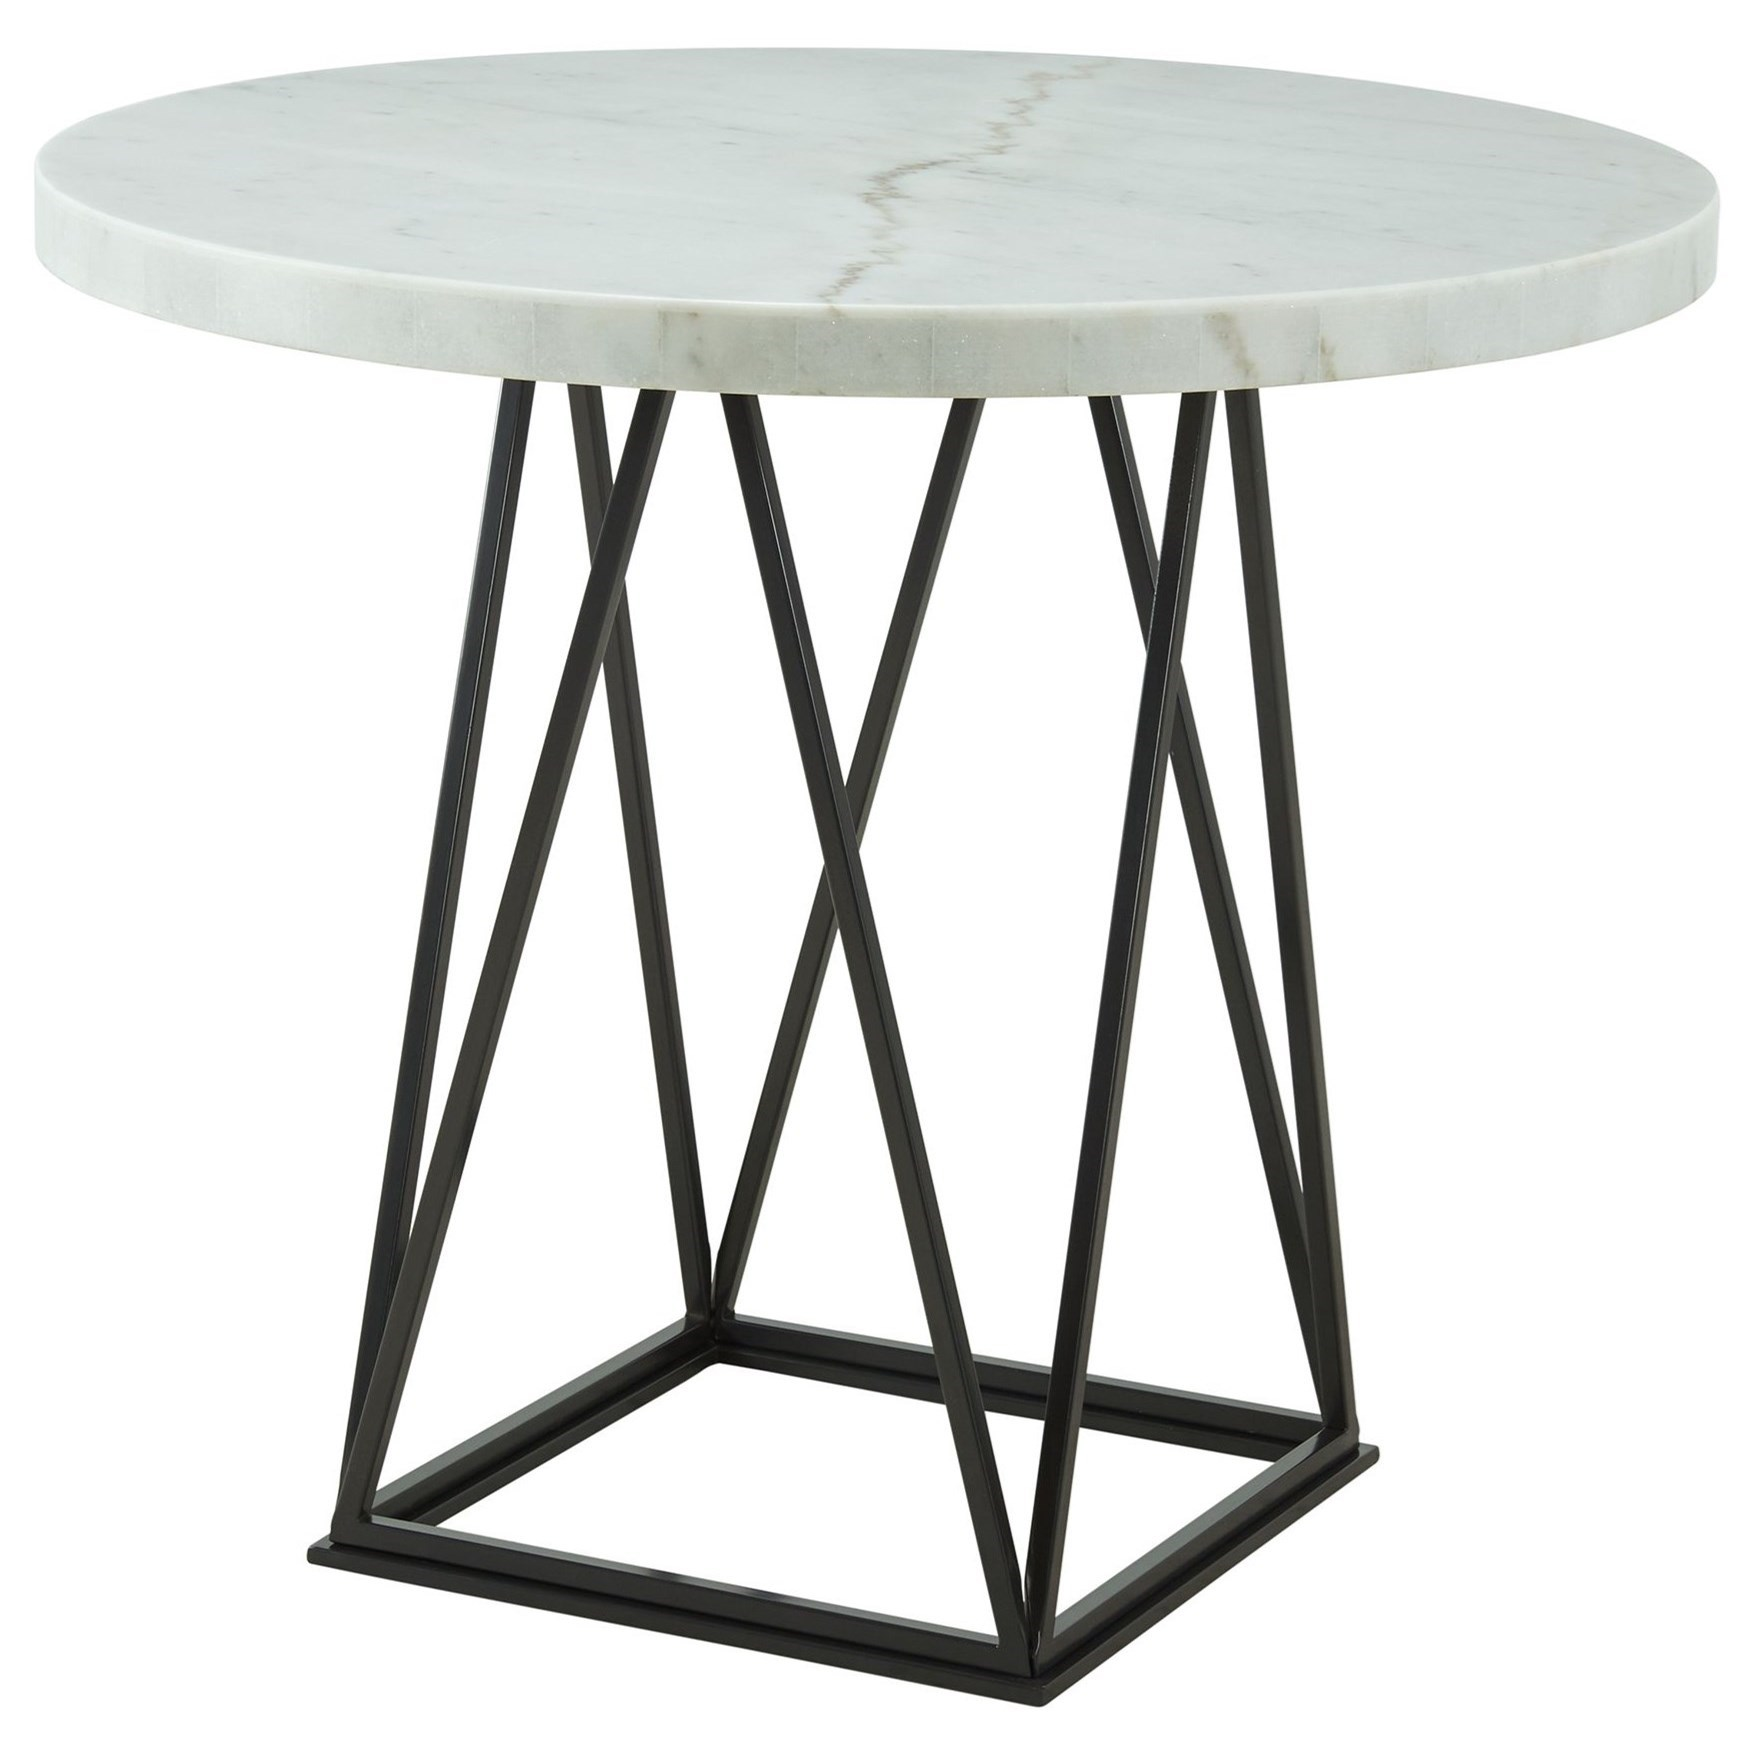 Picture of: Elements International Riko Round Counter Height Dining Table With Marble Top Lindy S Furniture Company Pub Tables